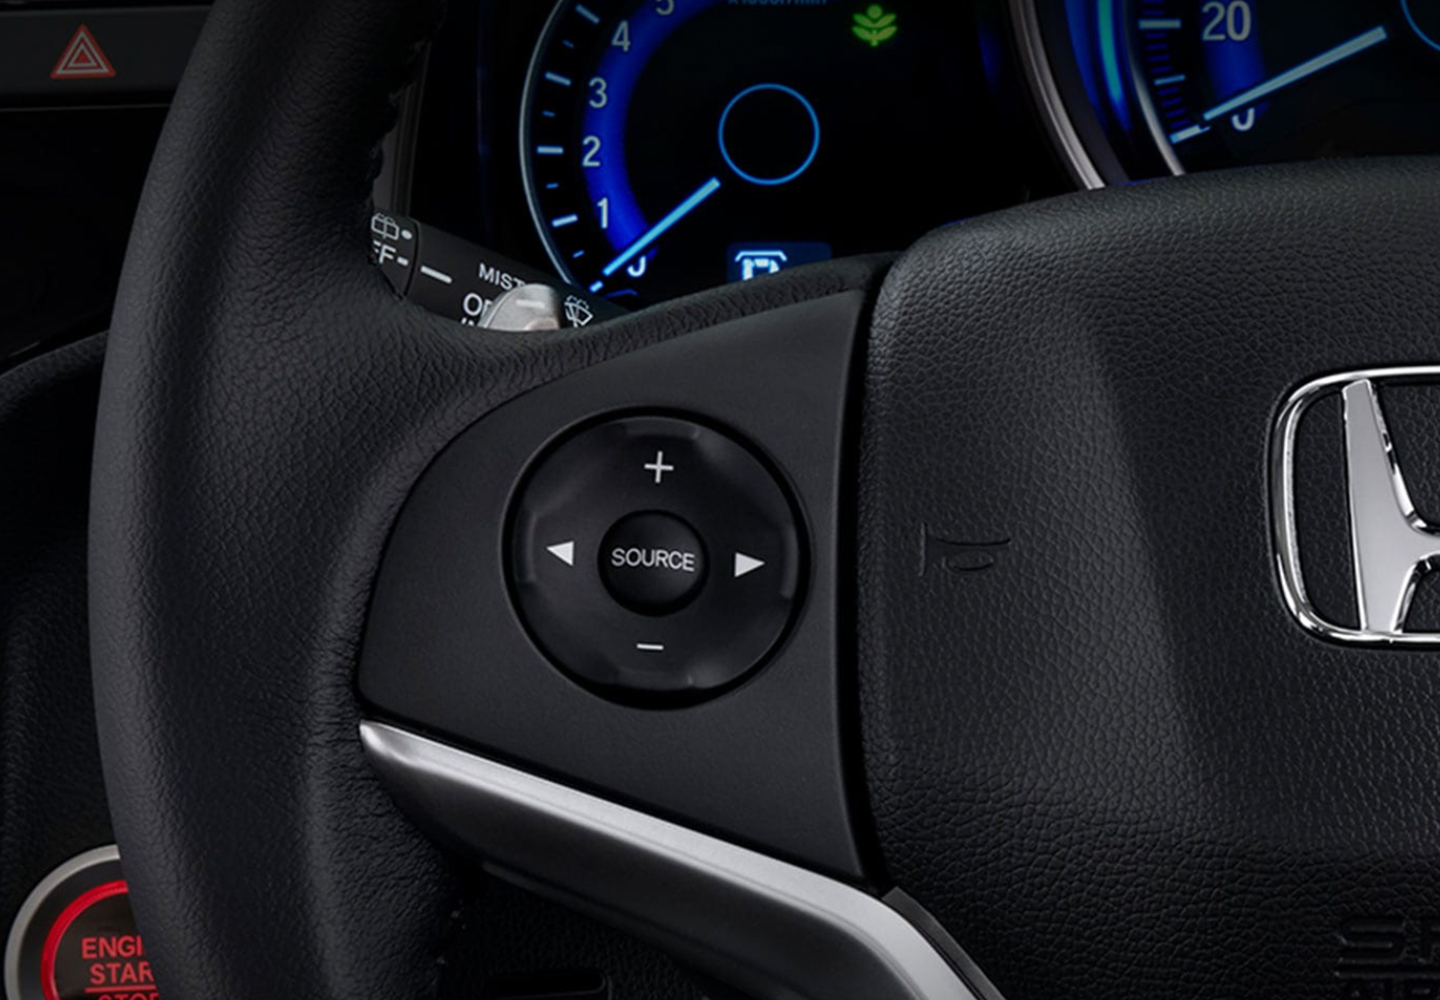 Jazz Steering wheel-mounted controls